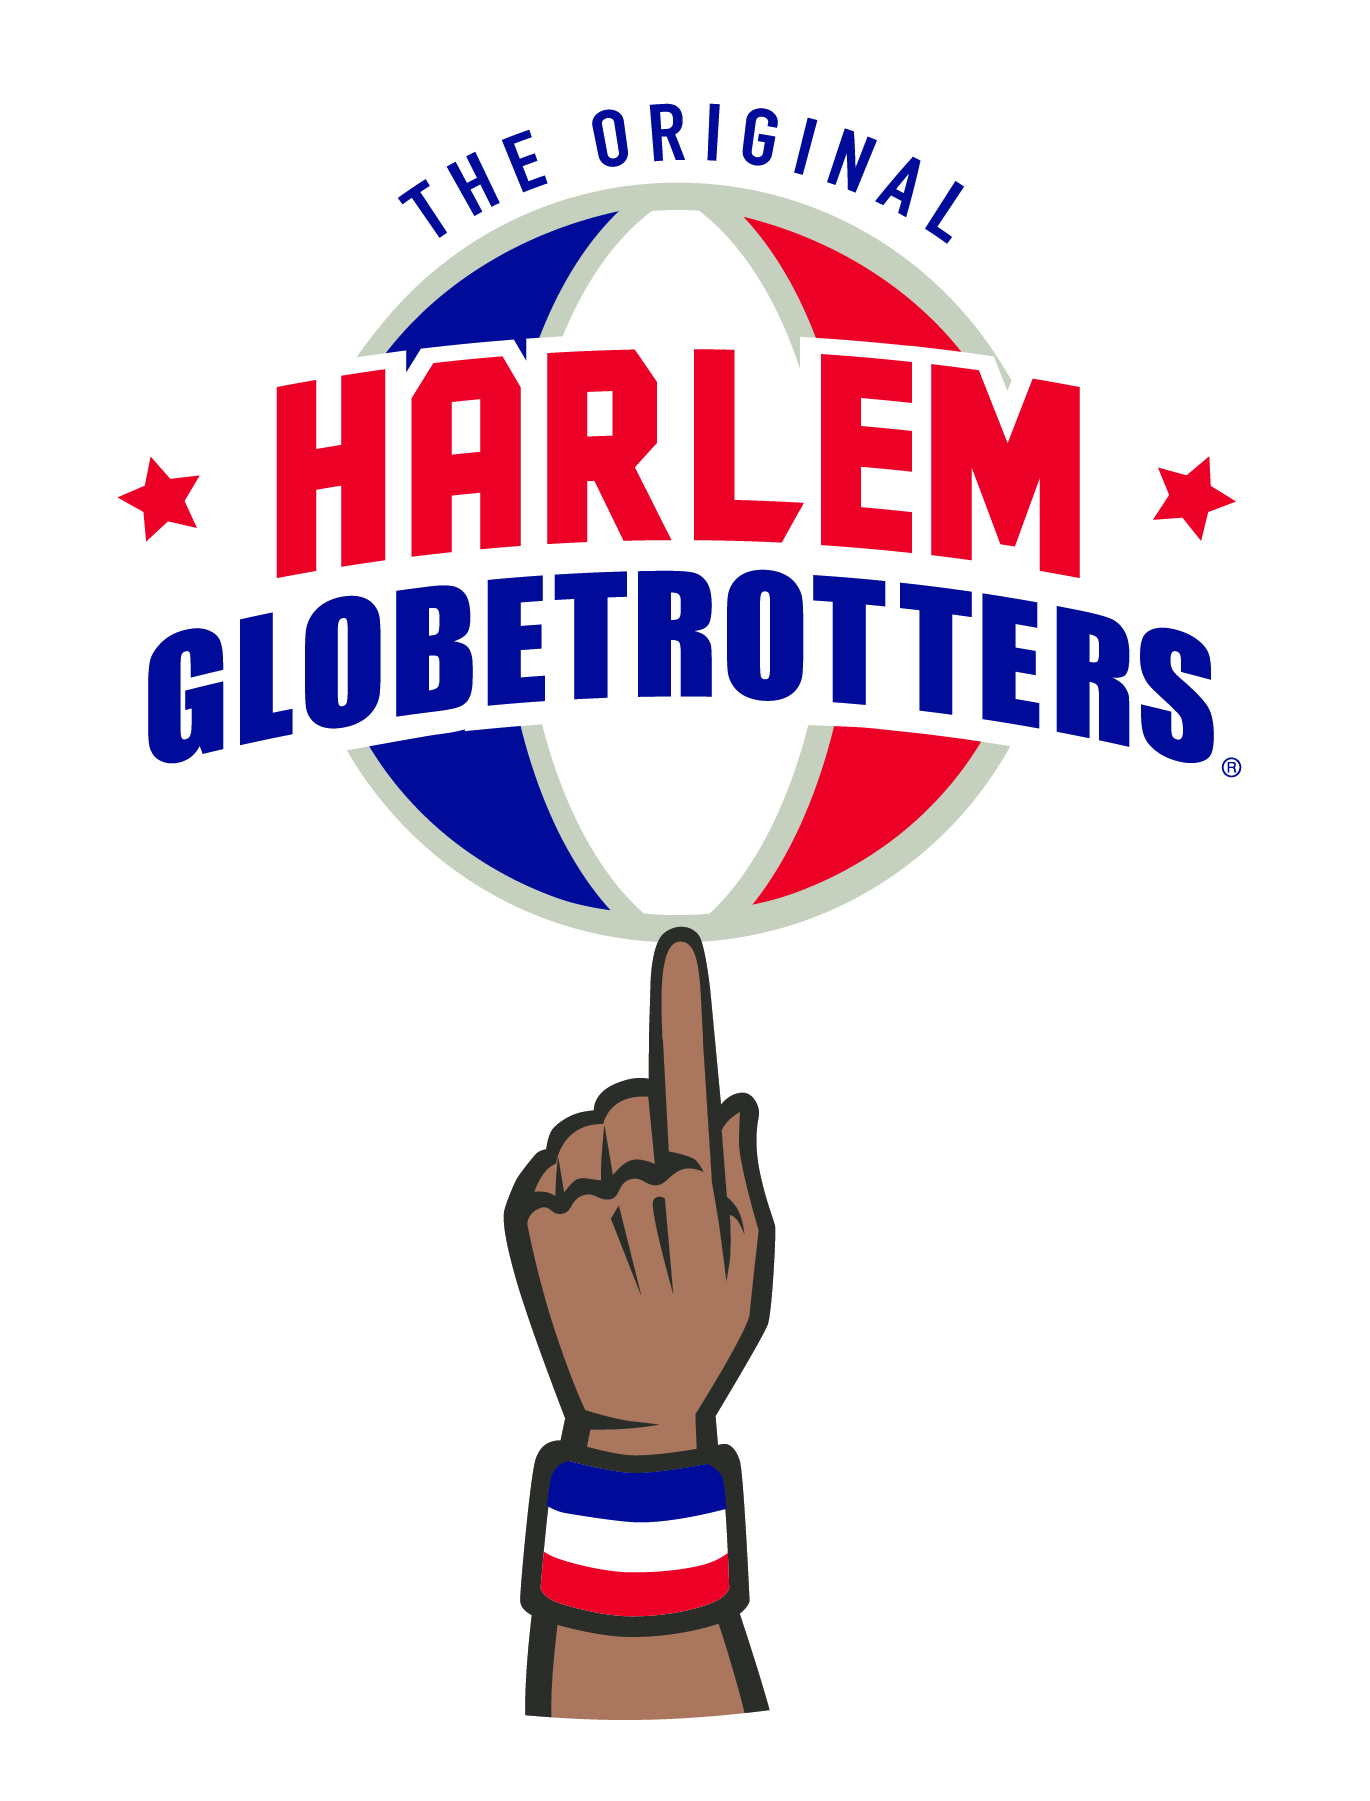 Enter to Win Tickets to See The Original Harlem Globetrotters at Royal Farms Arena – March 25